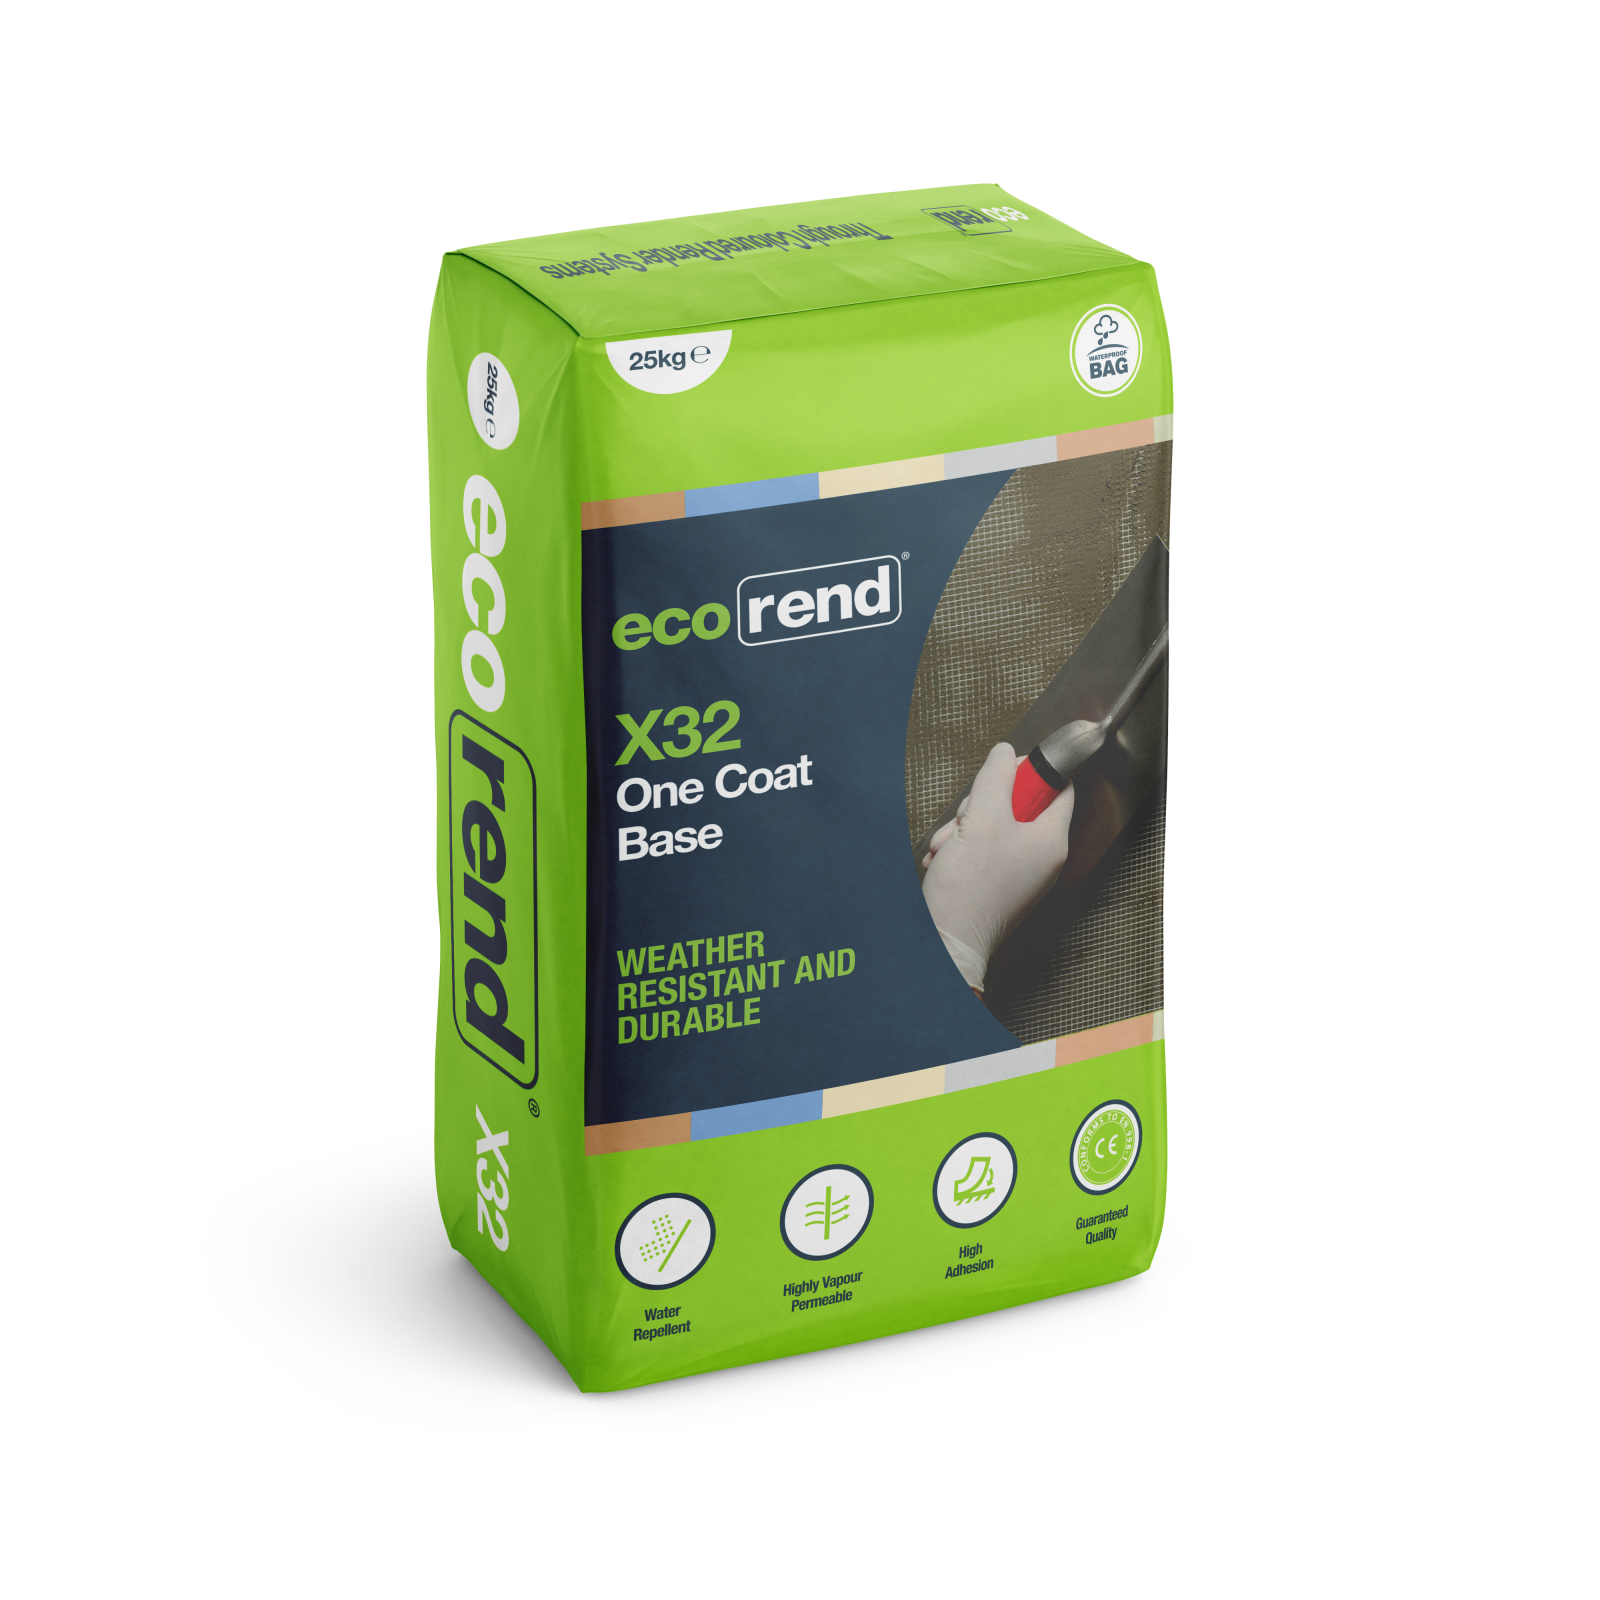 Ecorend X32 One Coat Base 25kg bag